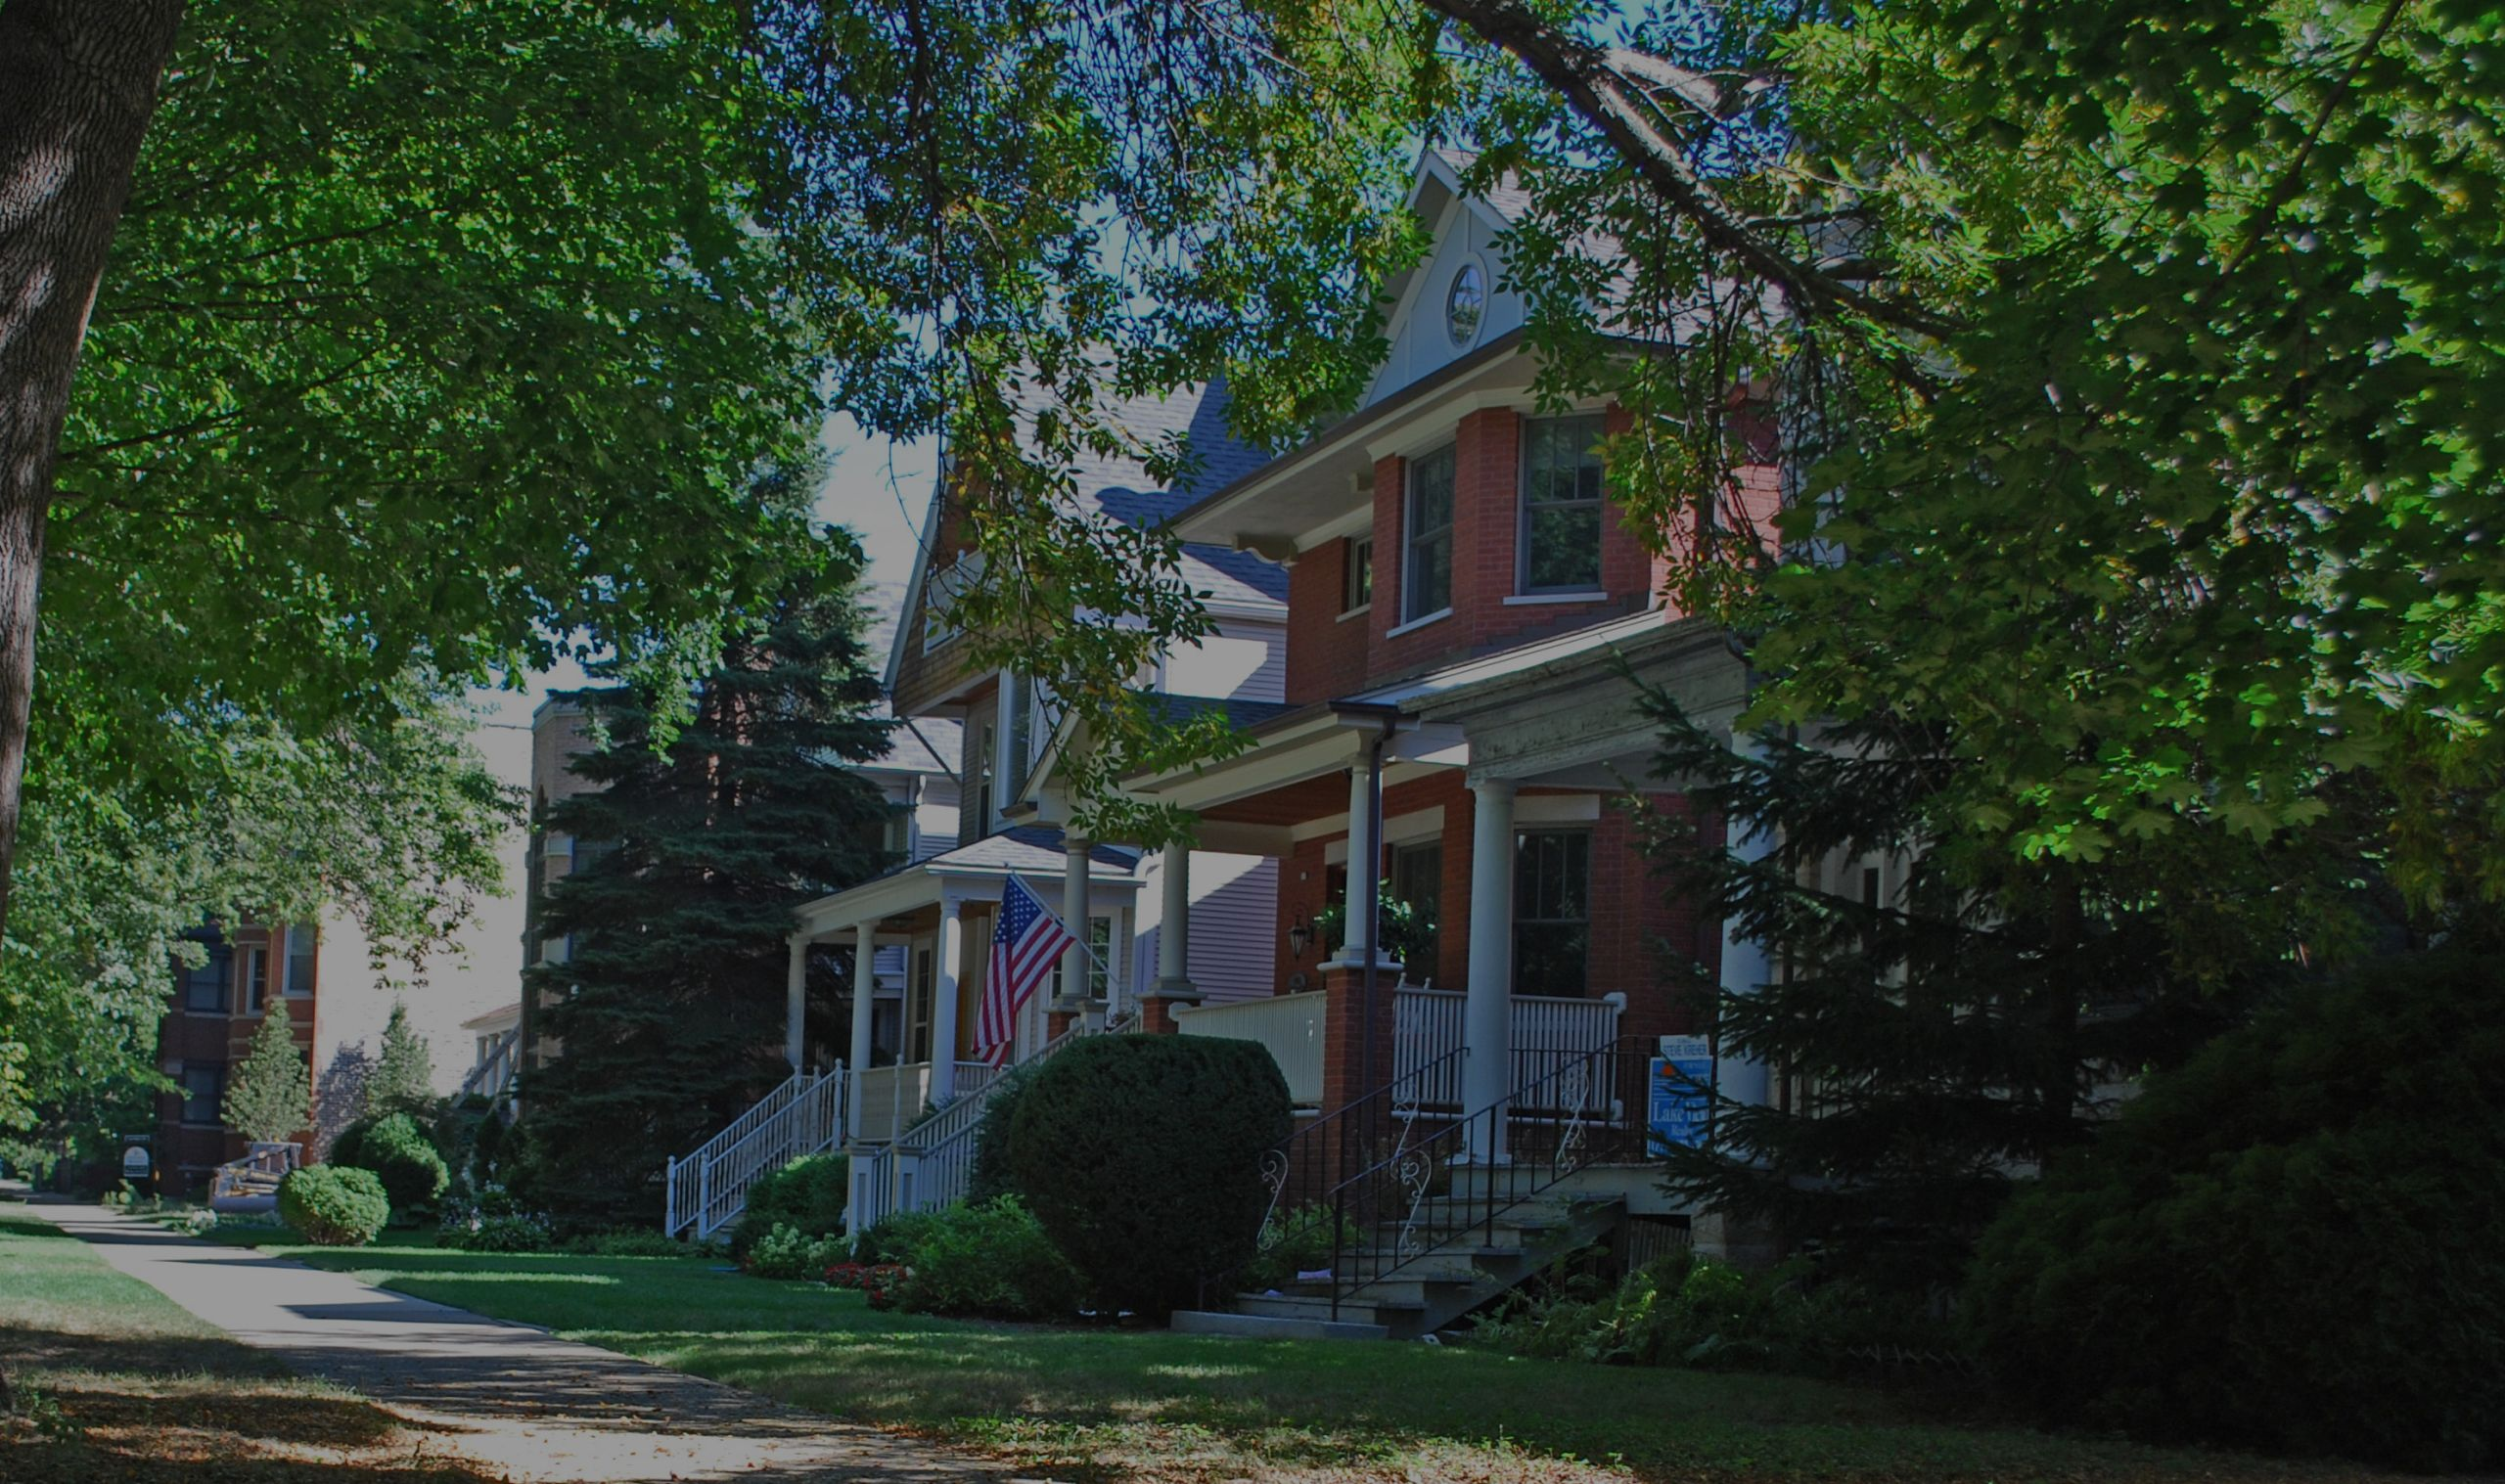 Chicago Neighborhood Tour: Ravenswood